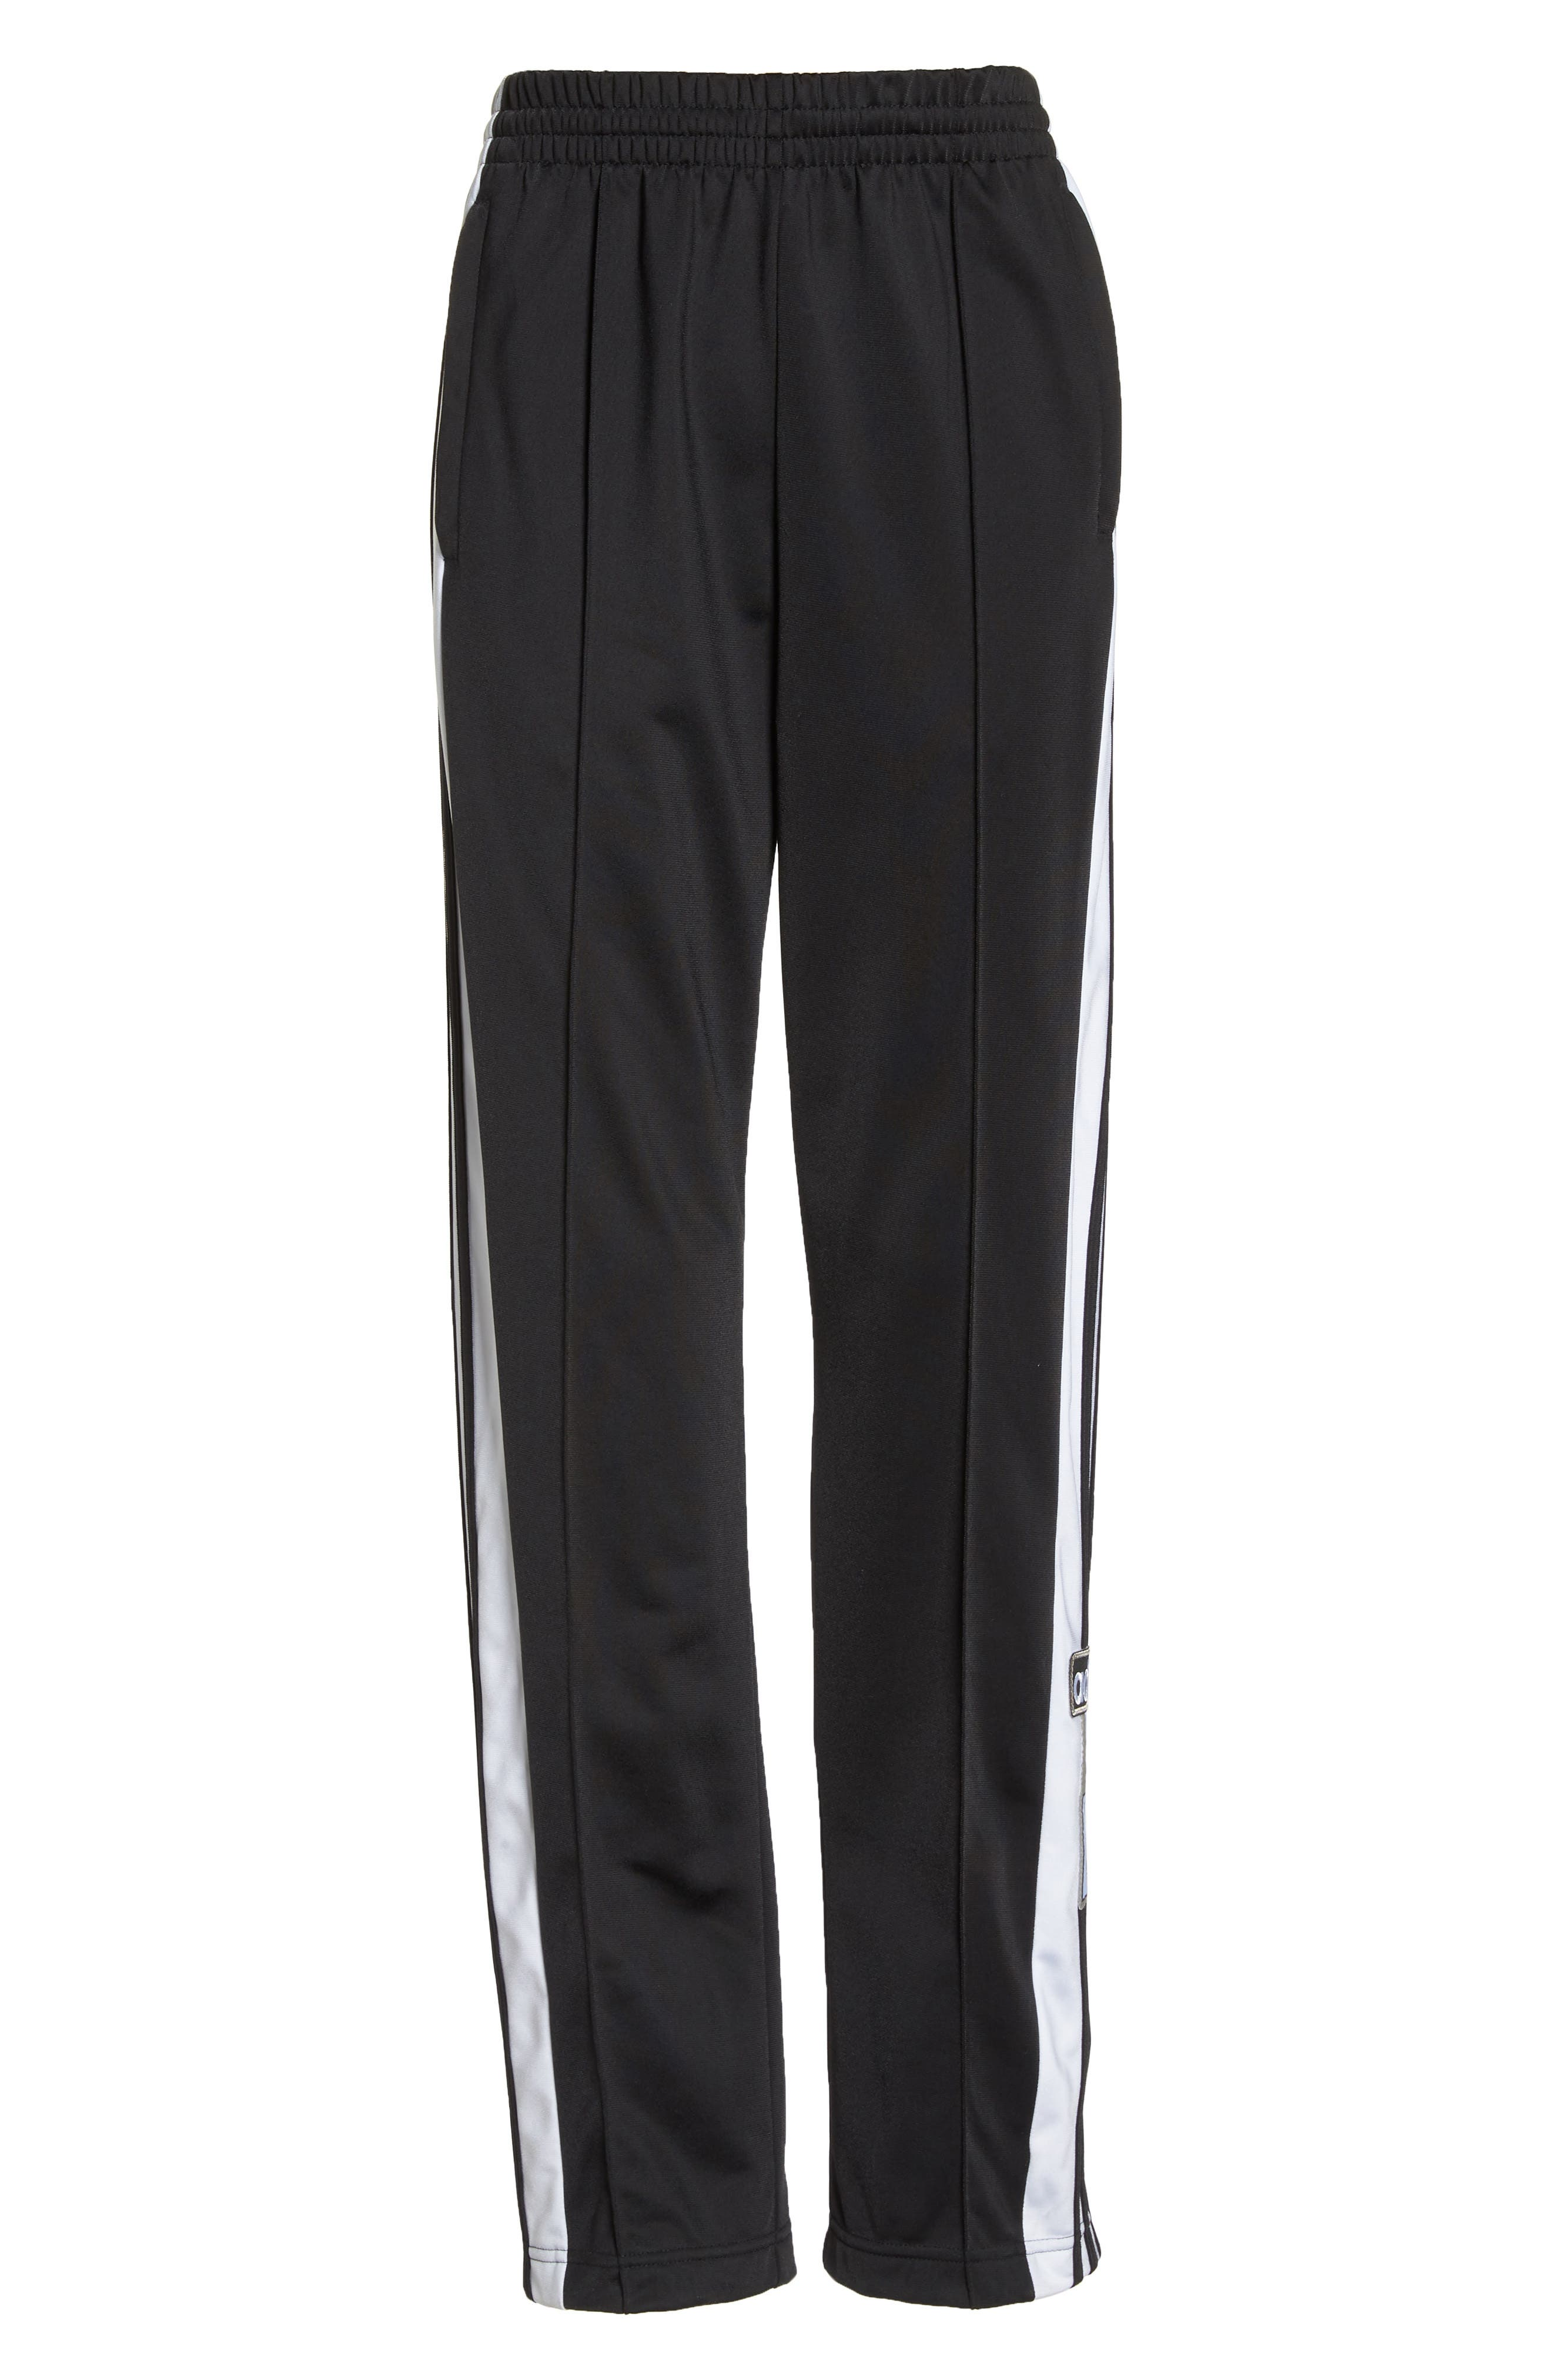 Originals Adibreak Tearaway Track Pants,                             Main thumbnail 1, color,                             Black/ Carbon